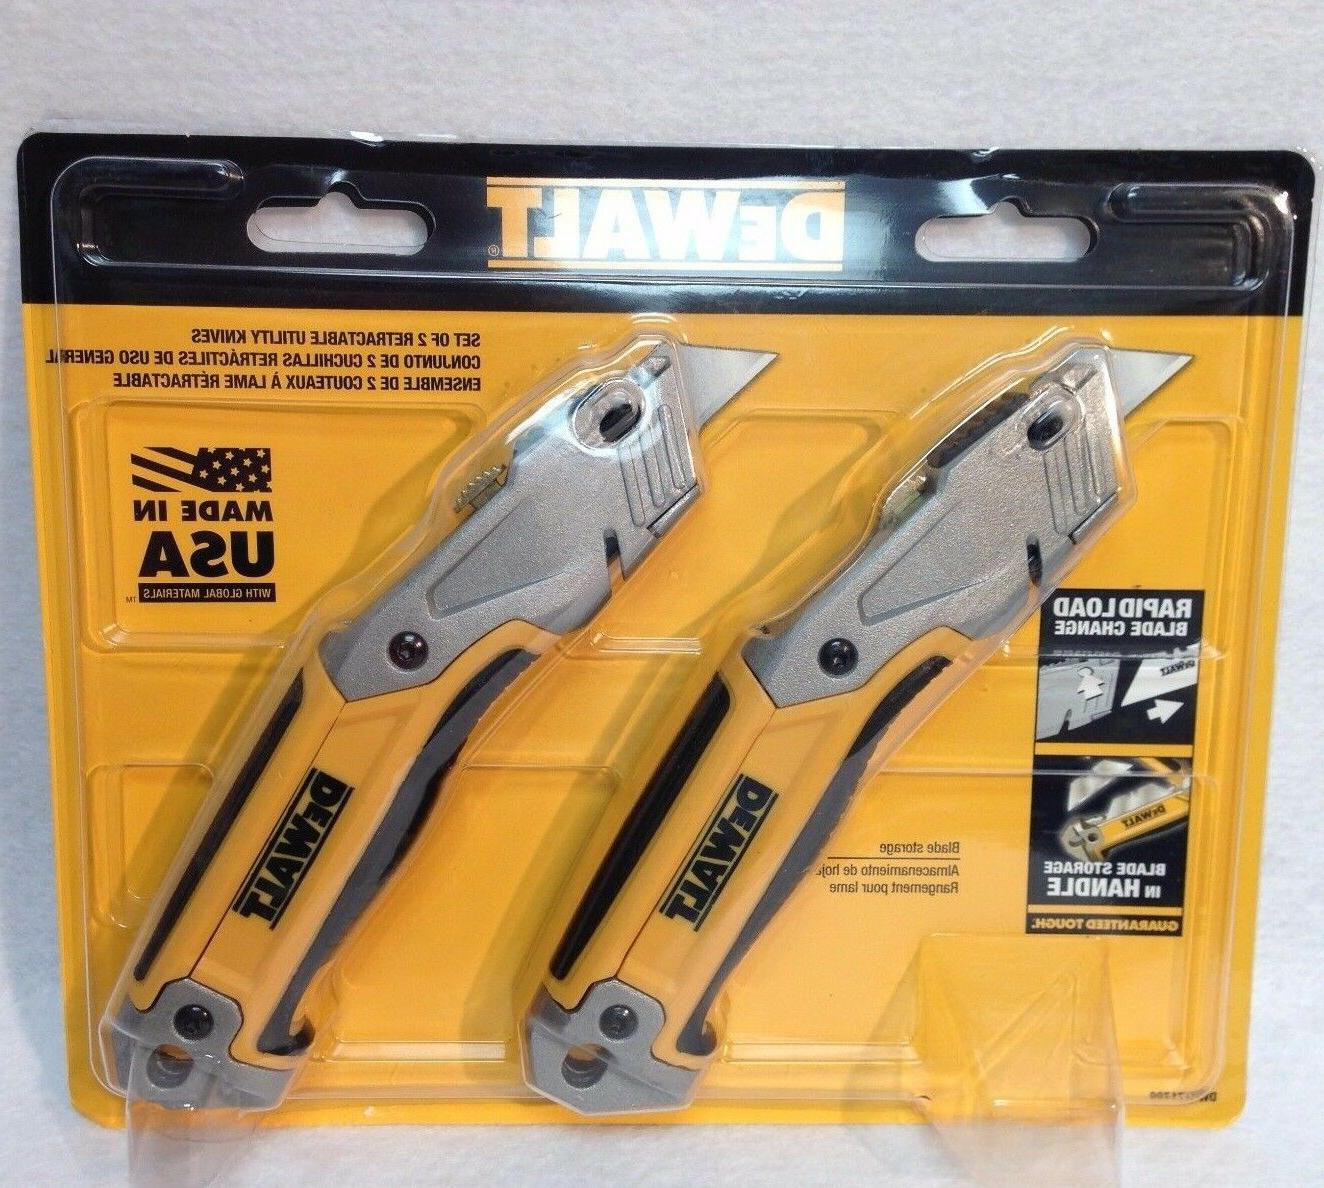 DeWalt DWHT71700 Retractable 2 Pack Utility Knife - Made in